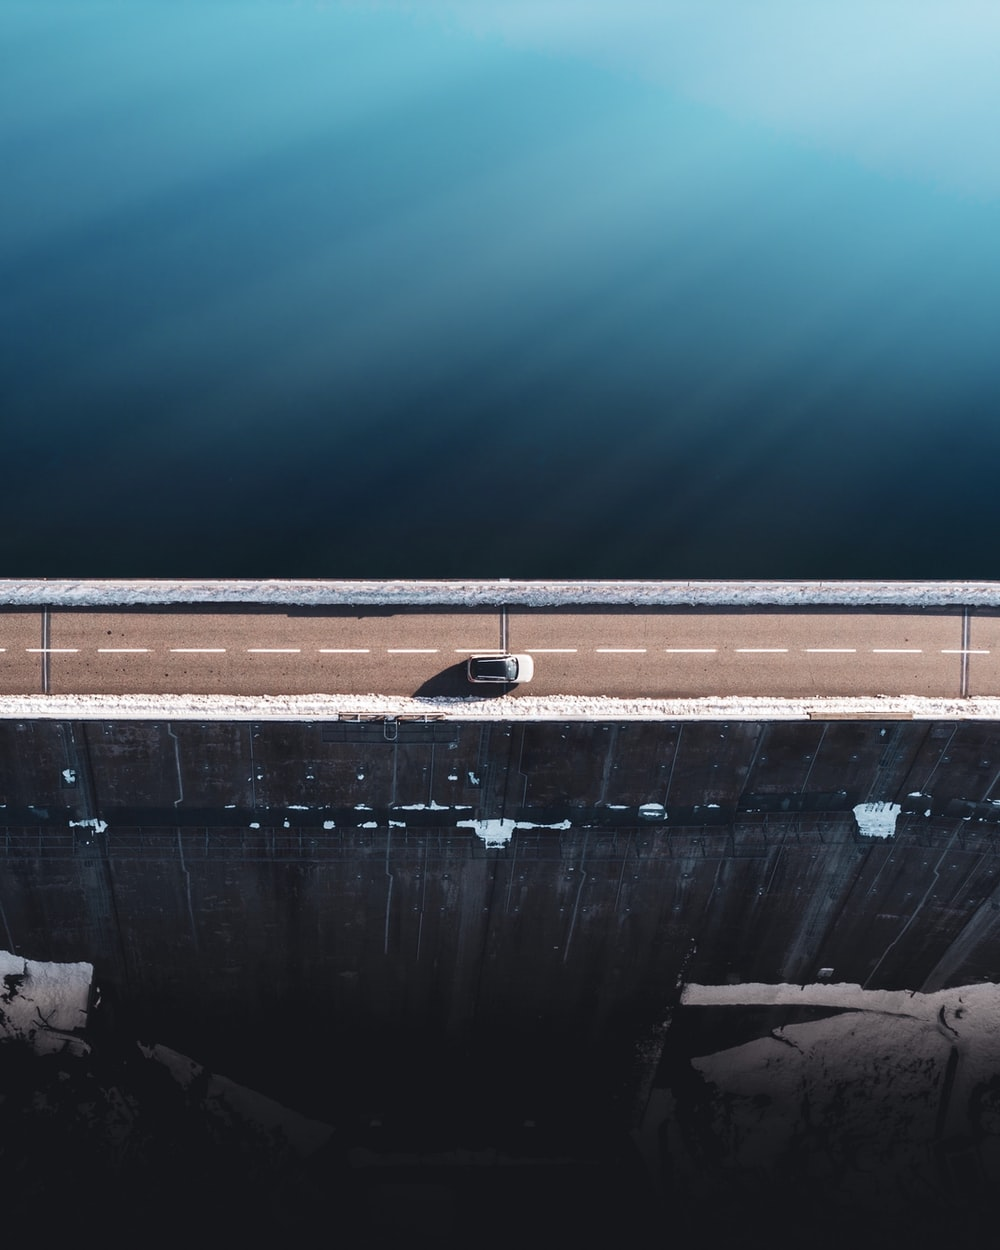 gray concrete wall beside body of water during daytime